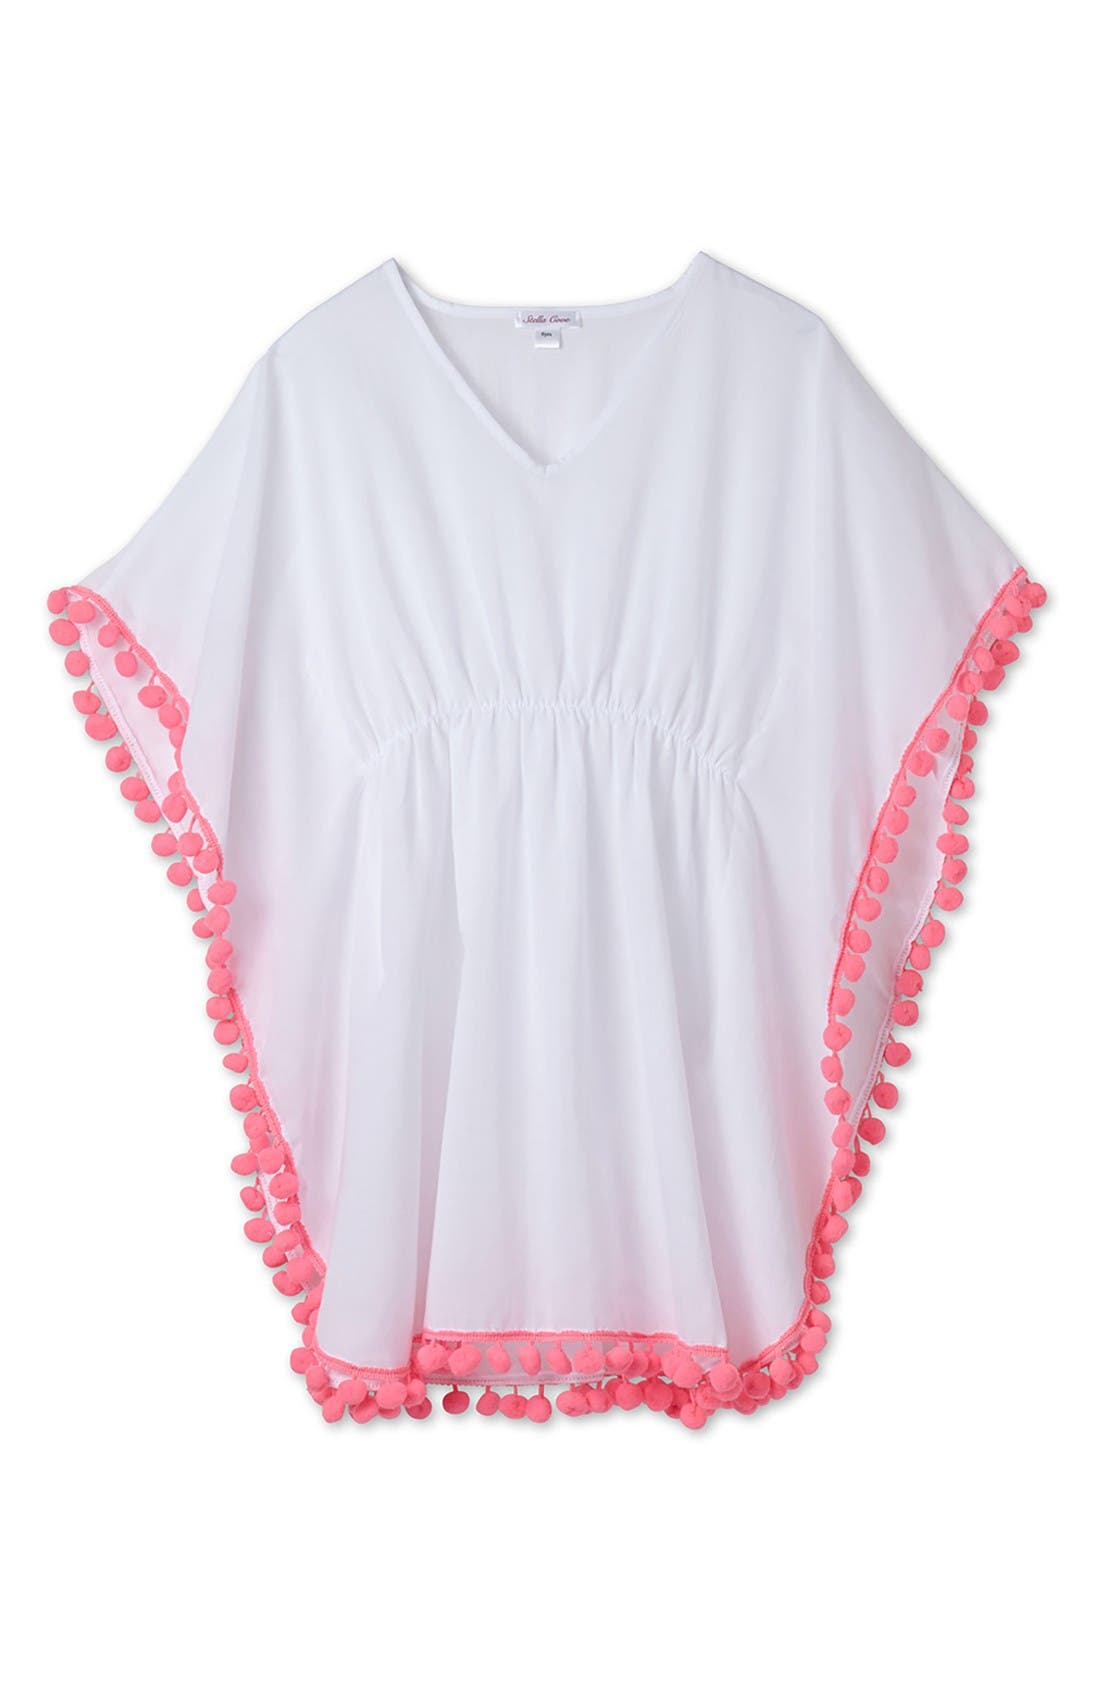 Alternate Image 1 Selected - Stella Cove Pompom Cover-Up Poncho (Toddler Girls, Little Girls & Big Girls)